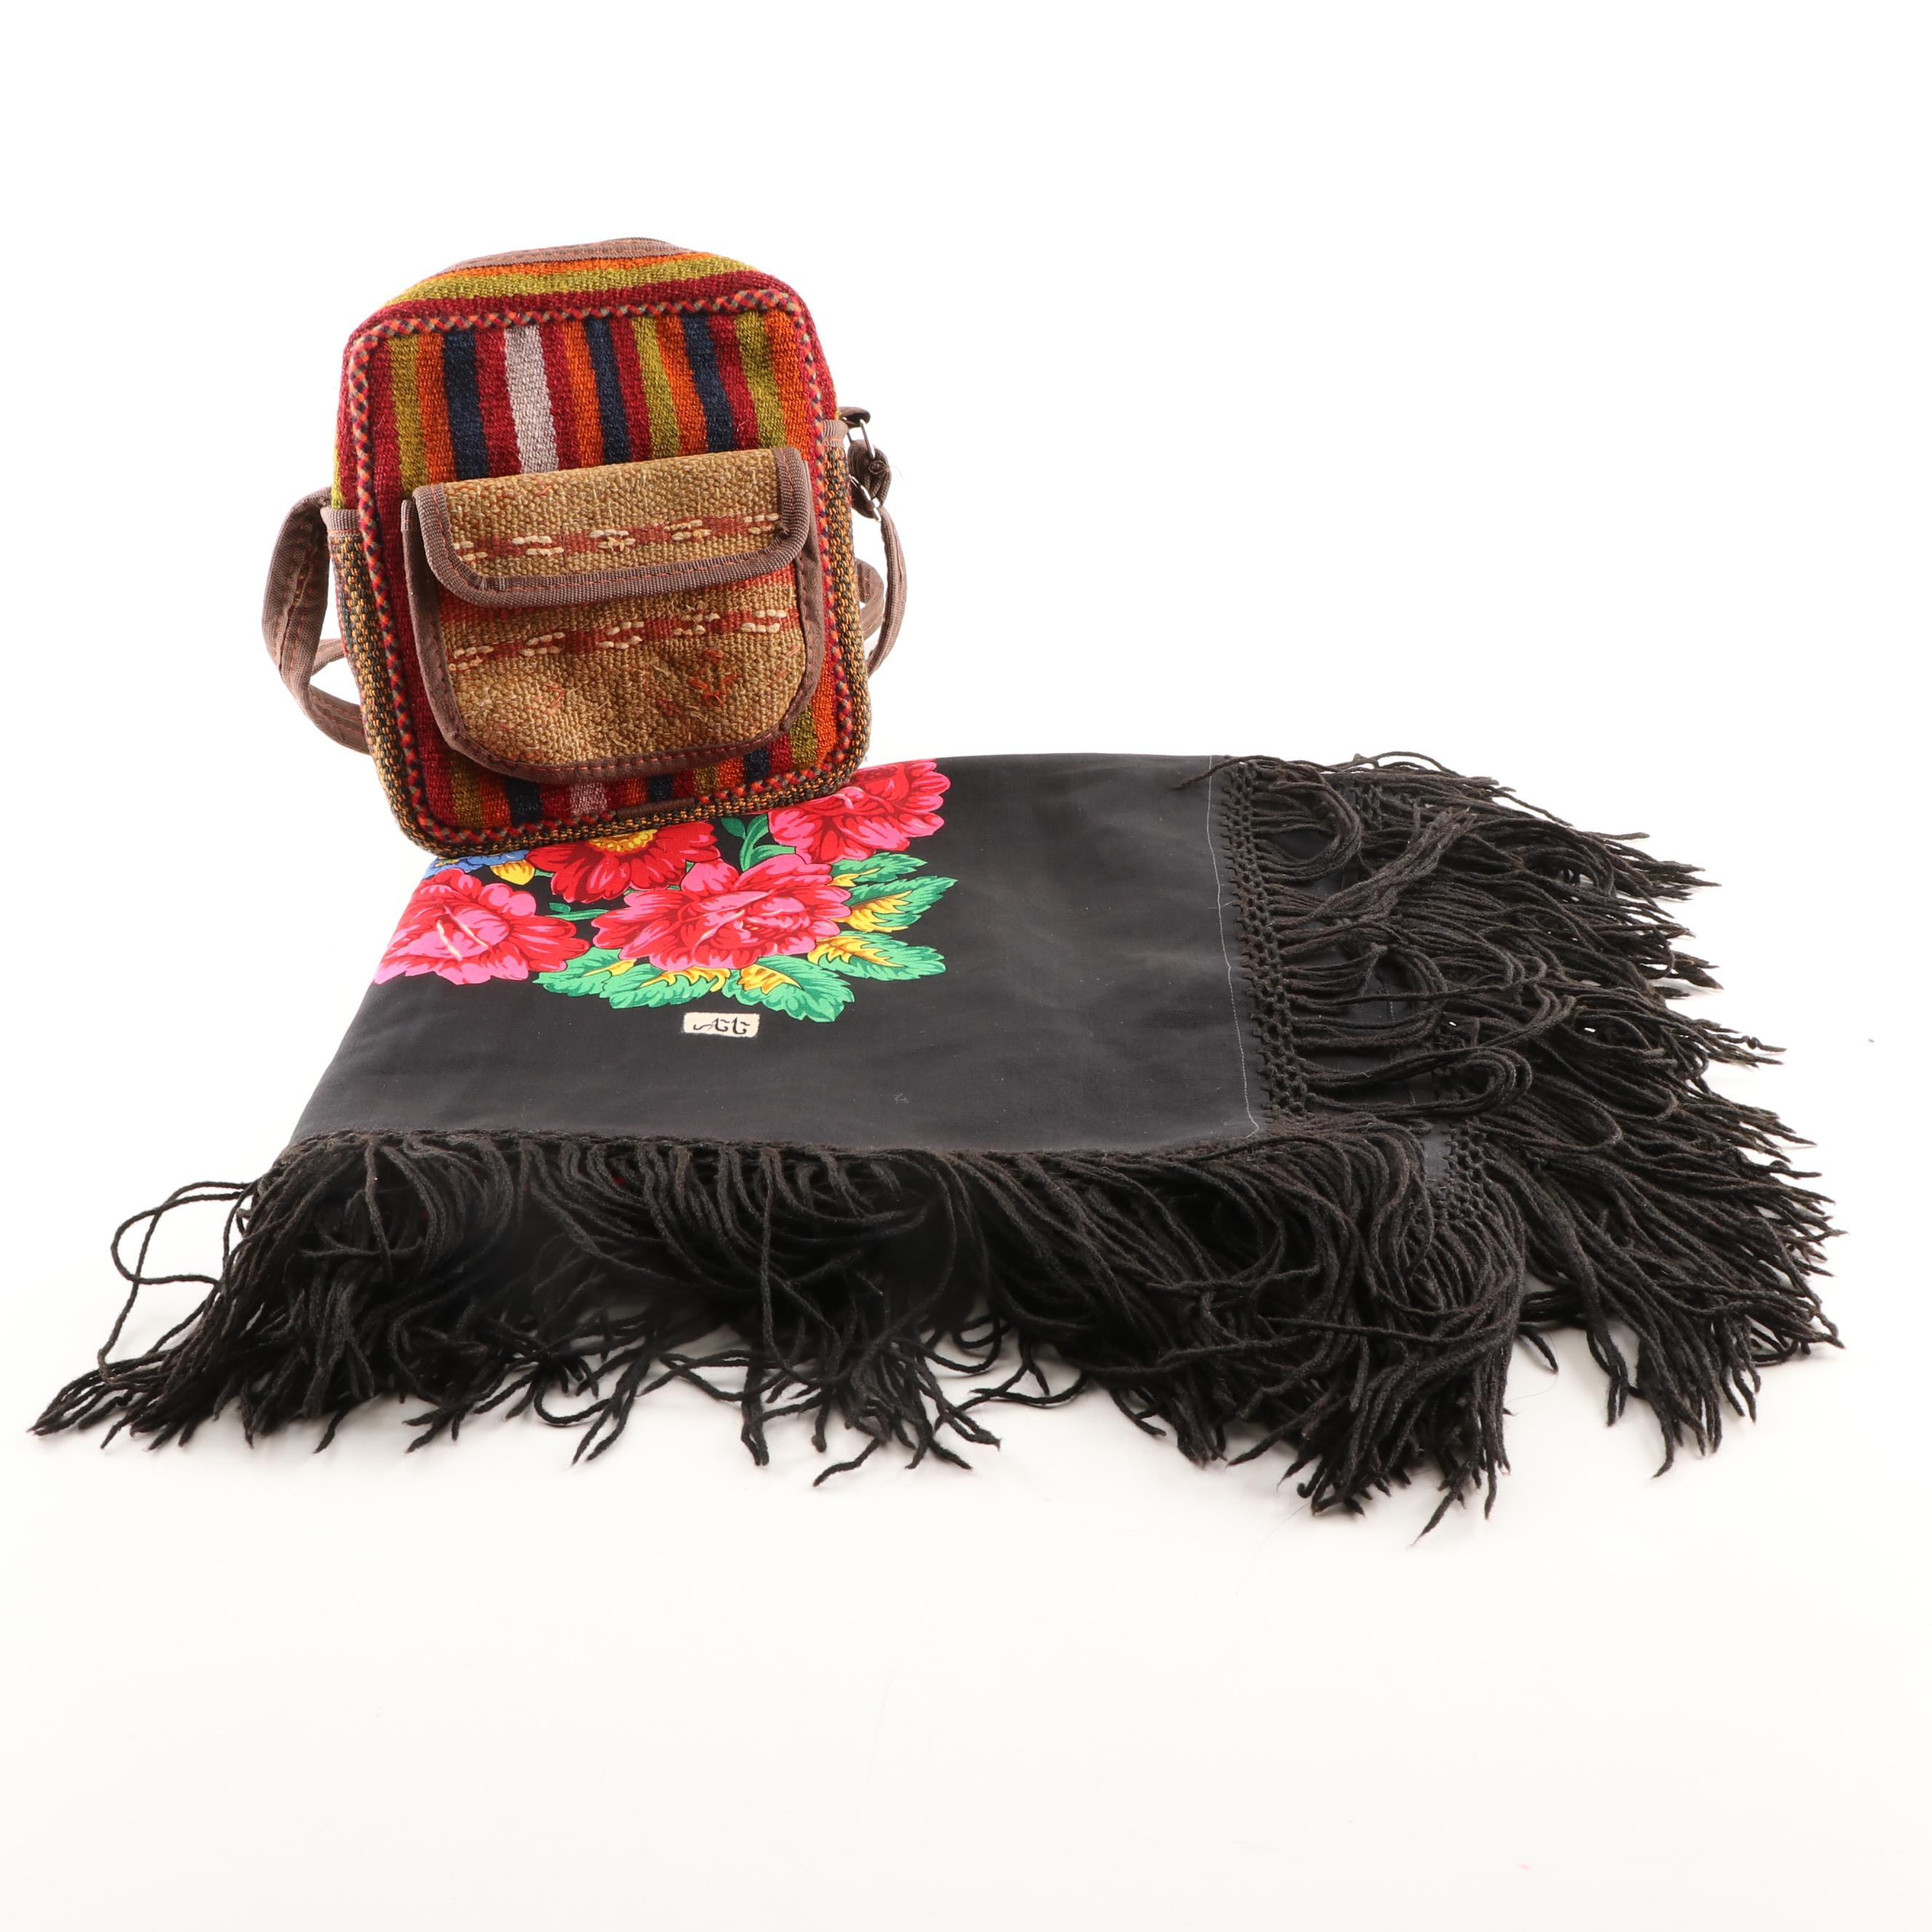 Patchwork Shoulder Bag and Floral Shawl